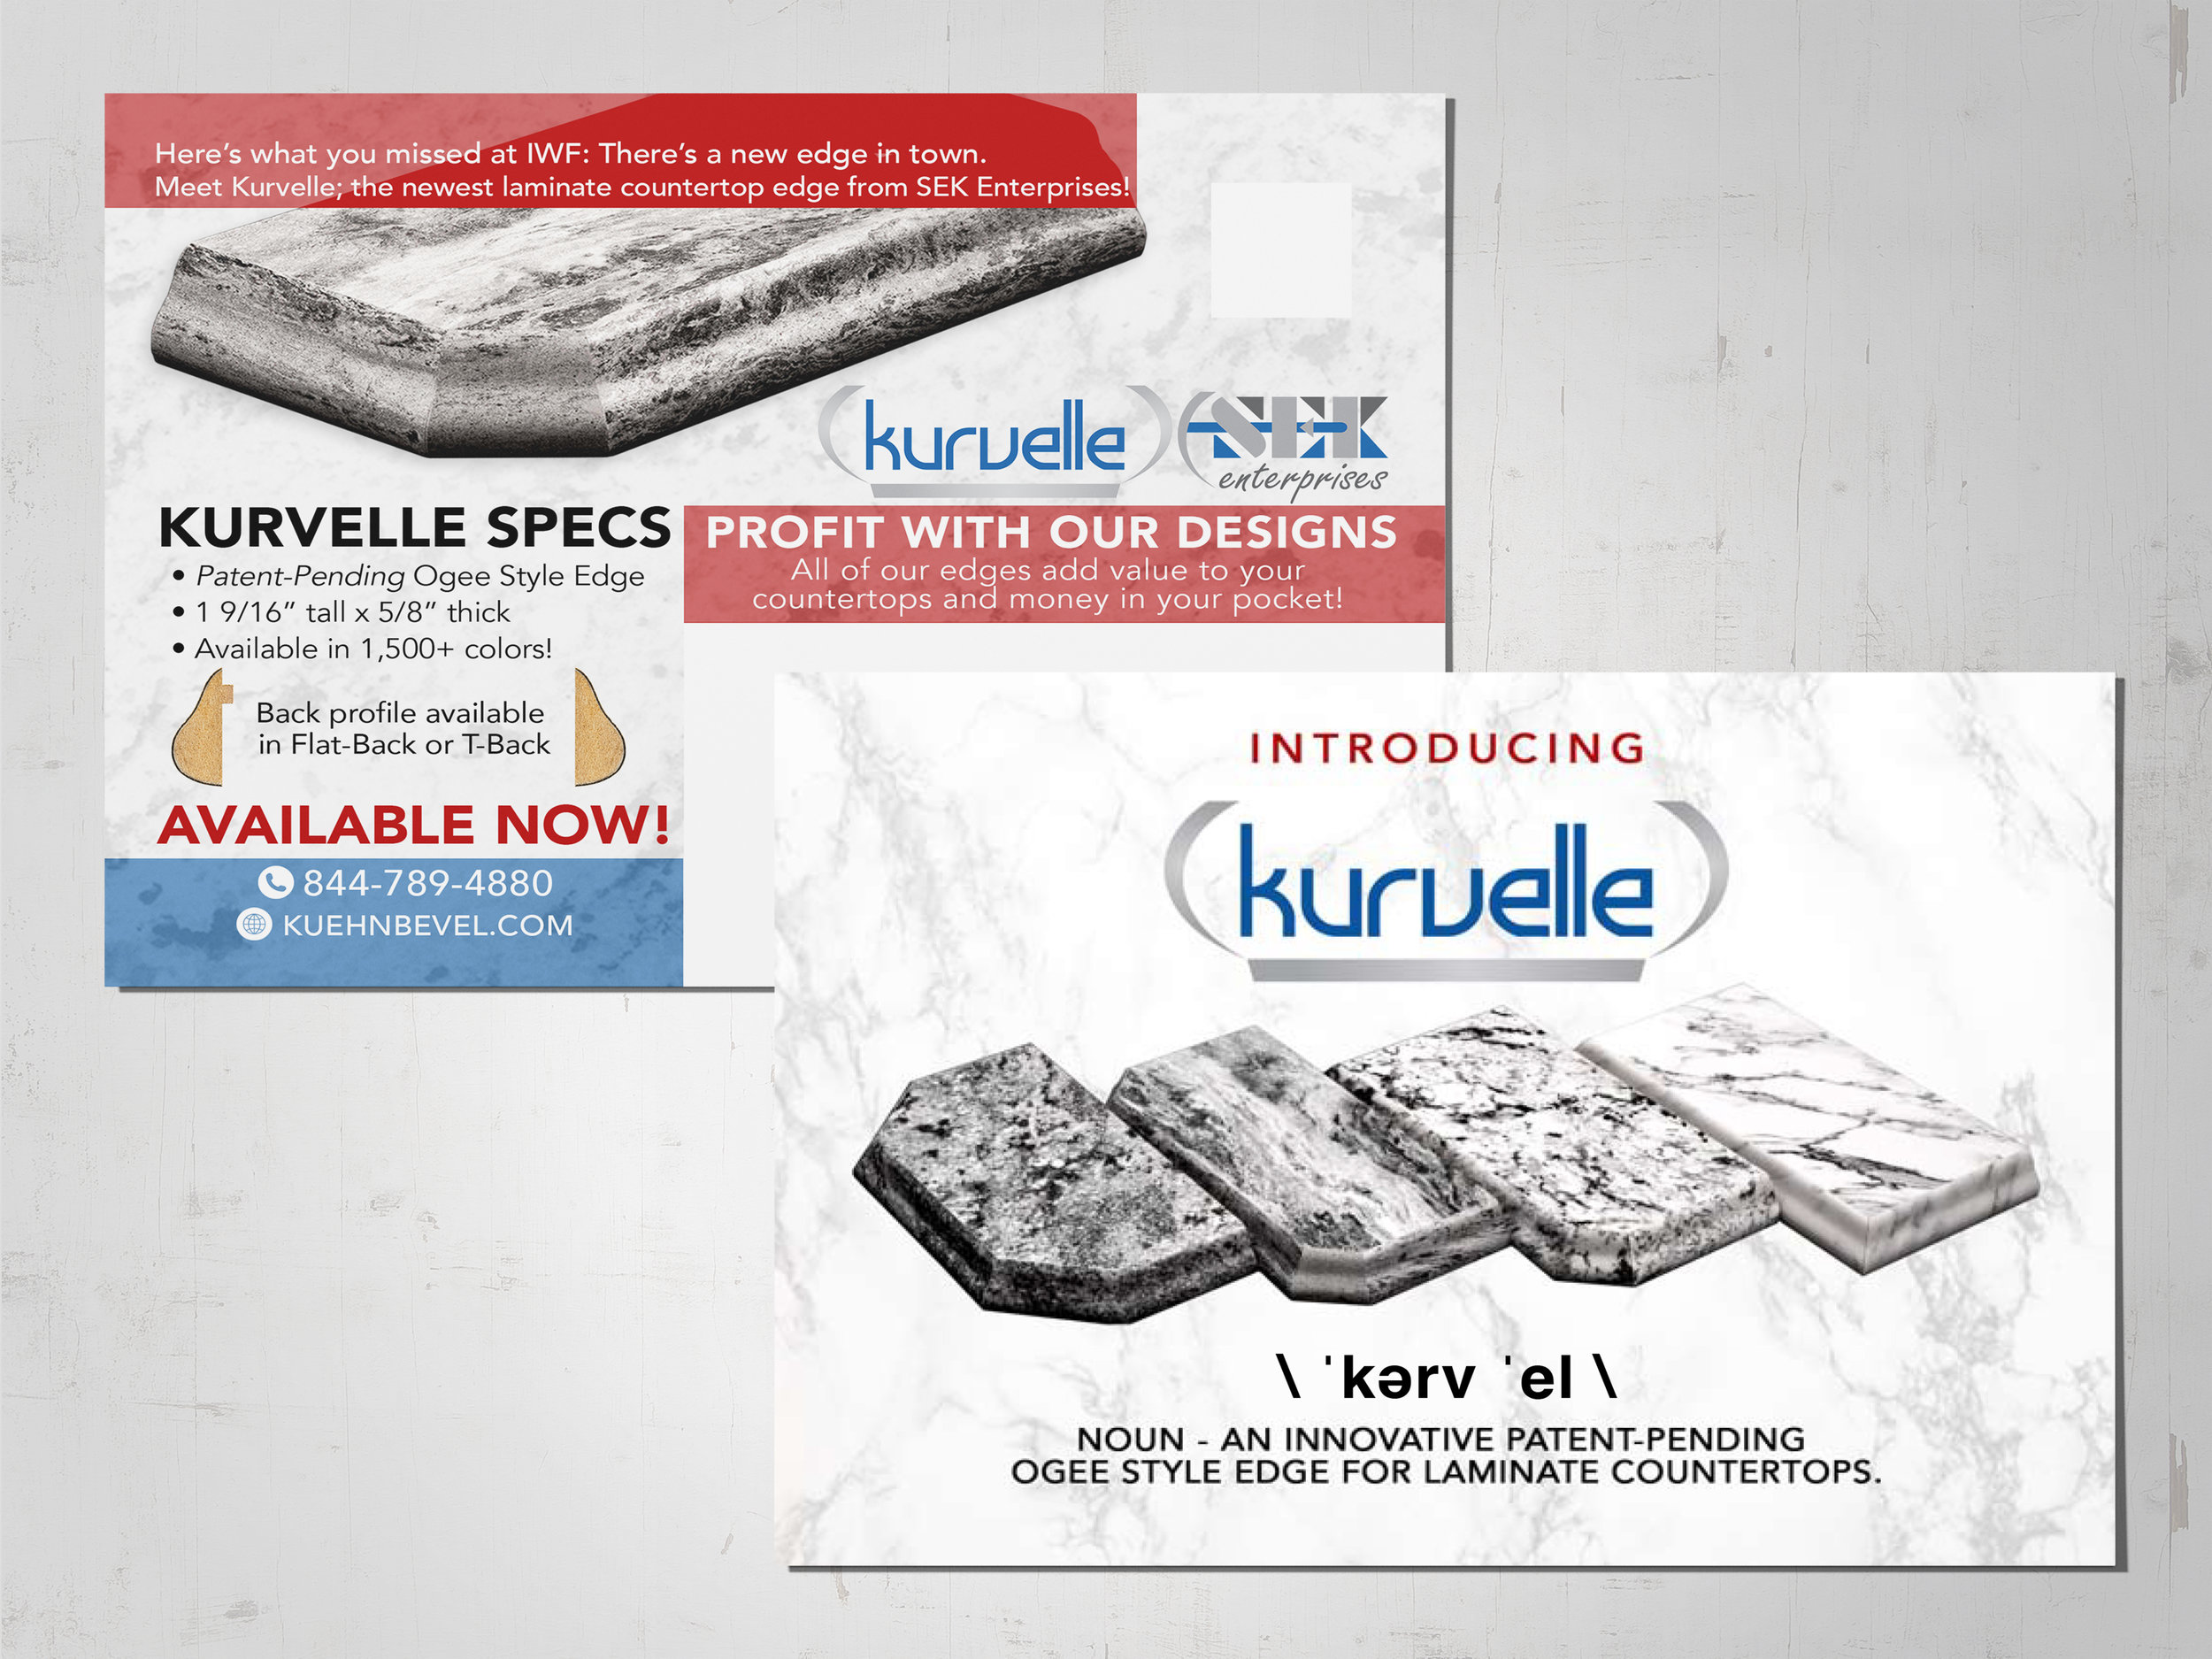 A direct mail piece I designed for a laminate countertop edge manufacturer in Northern New Jersey.